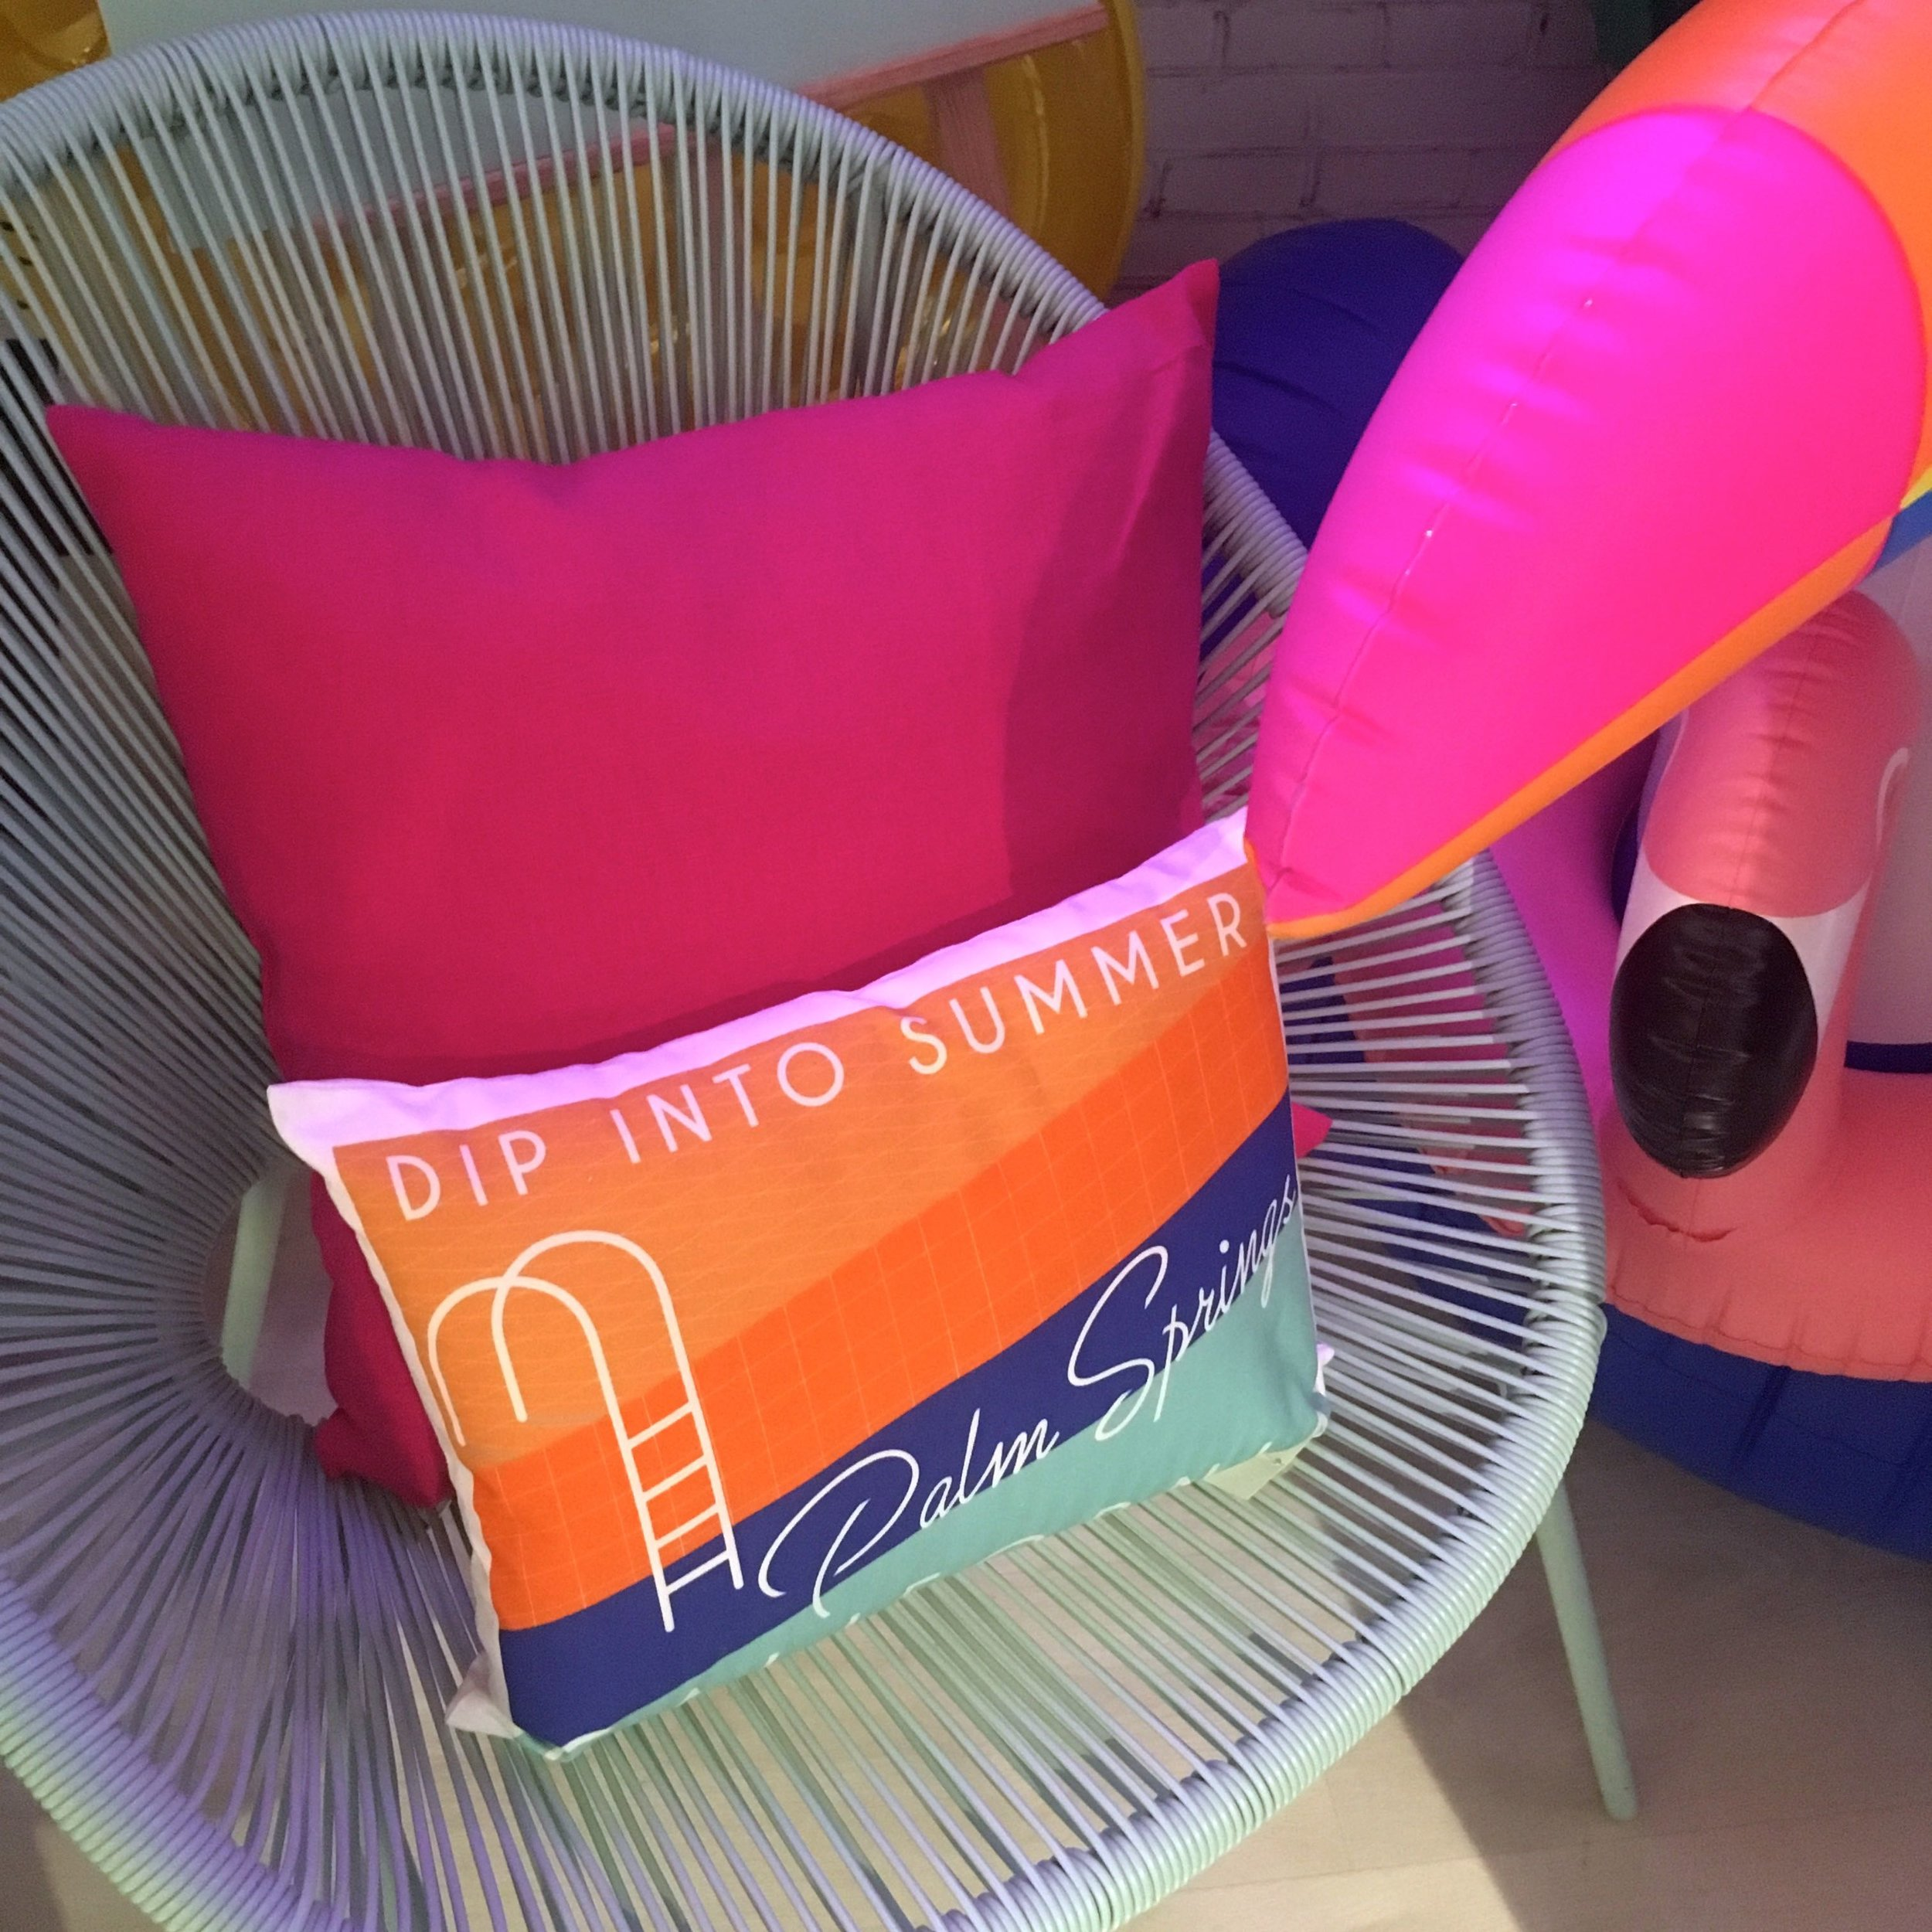 Dip into summer cushion and one of those chairs again